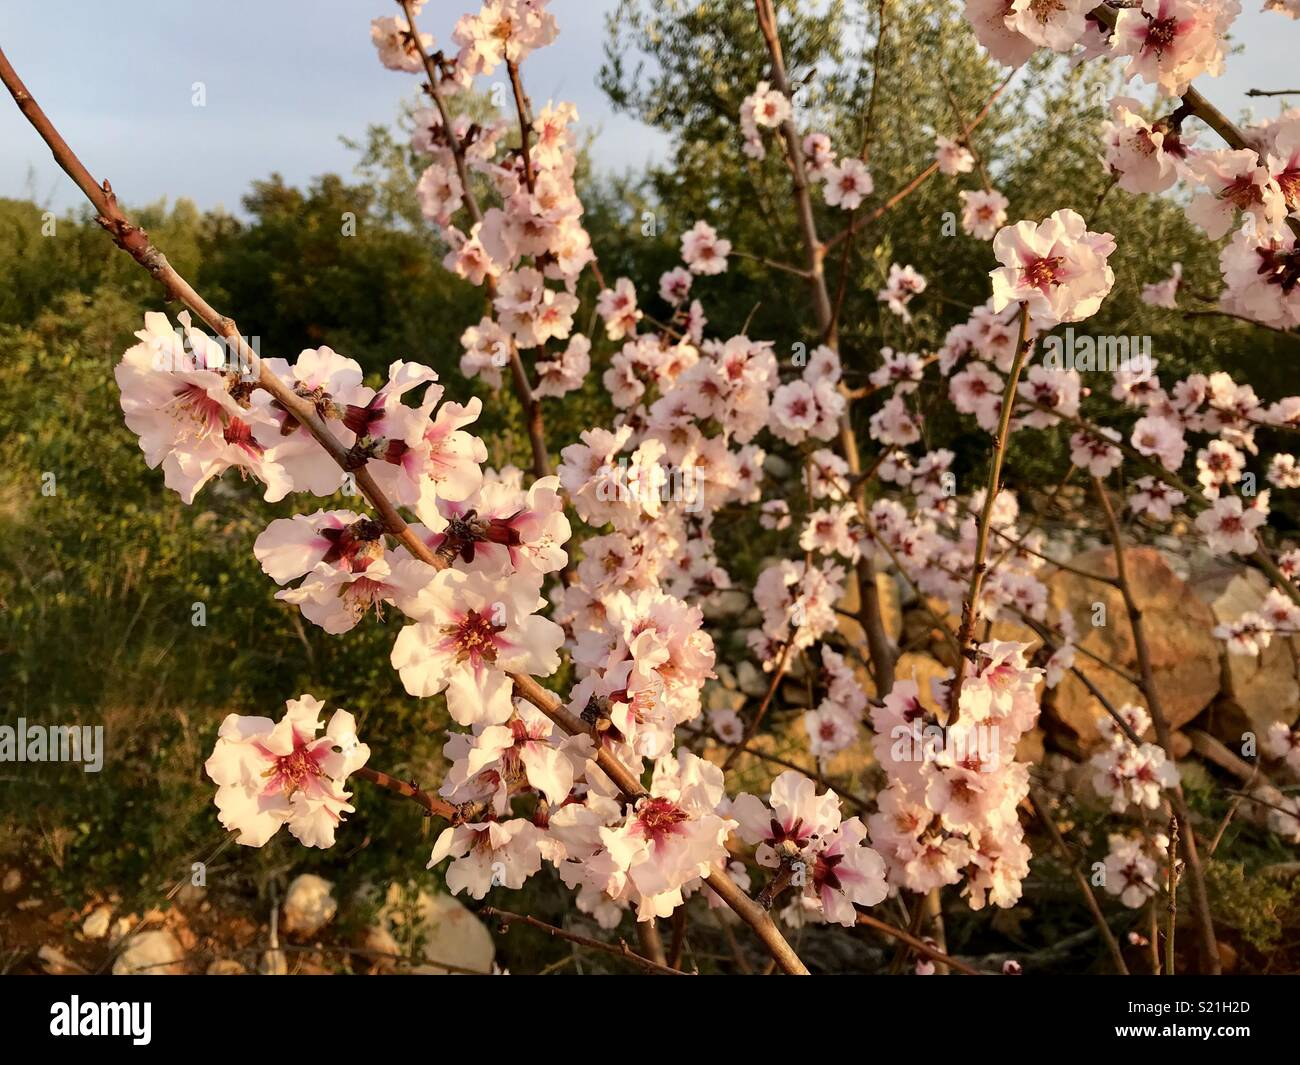 Almond blossom in Spain Stock Photo